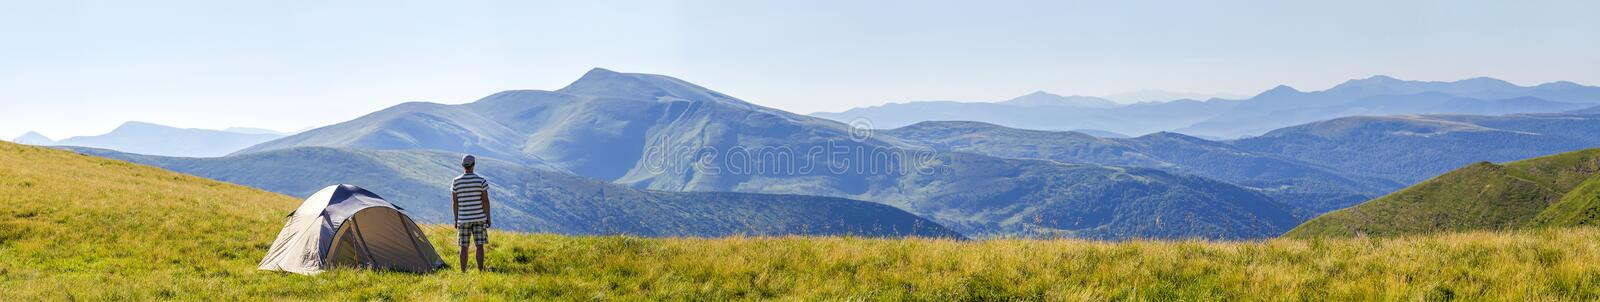 Hiker man standing near camping tent in carpathian mountains. To royalty free stock image